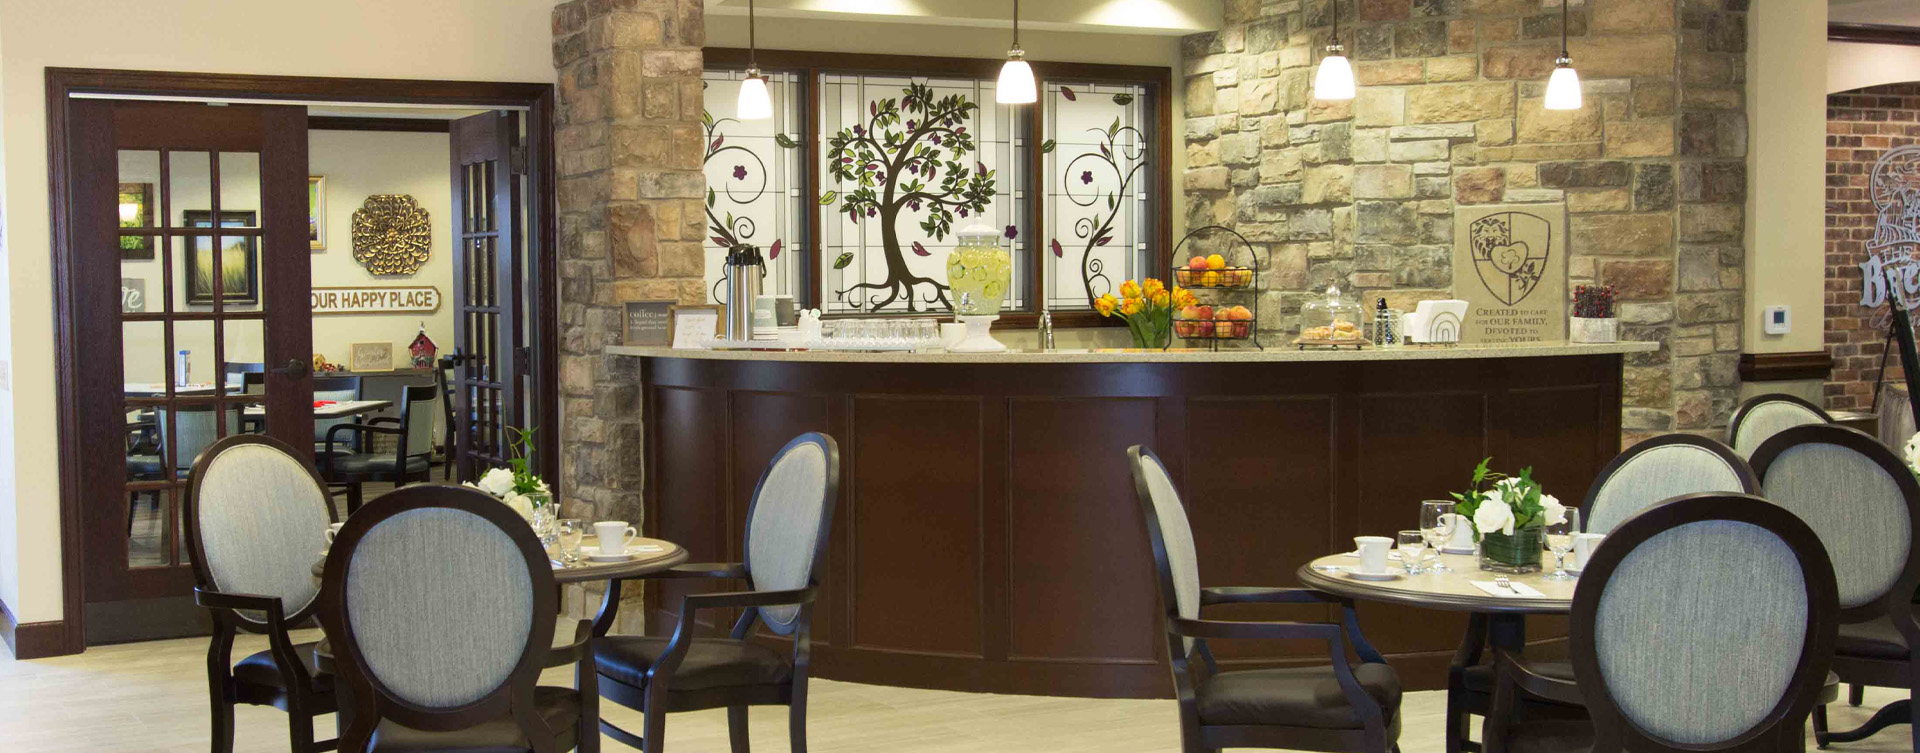 Mingle and converse with old and new friends alike in the bistro at Bickford of Gurnee